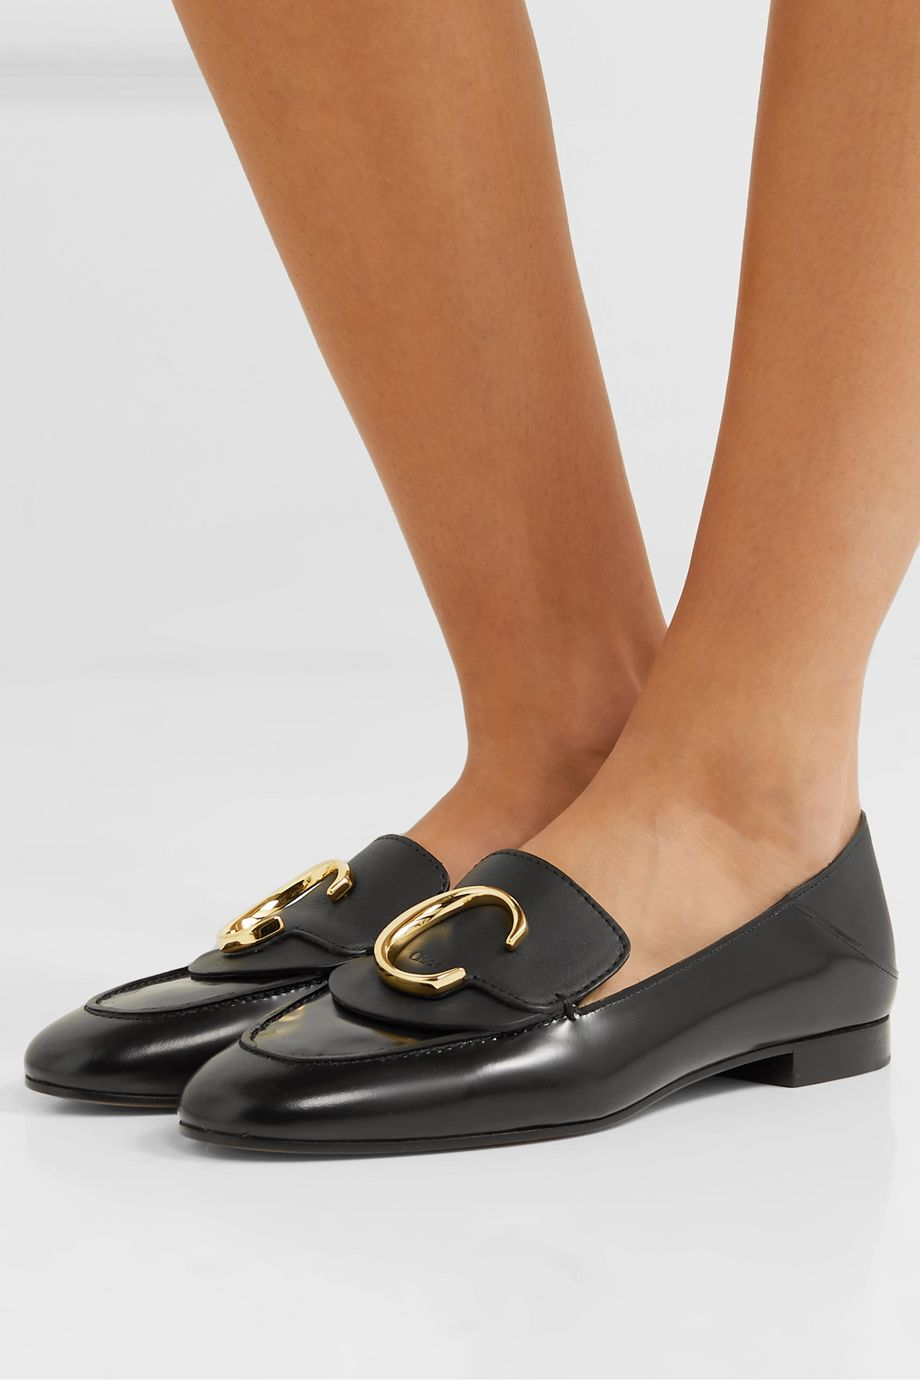 Chloé Chloé C logo-embellished leather collapsible-heel loafers